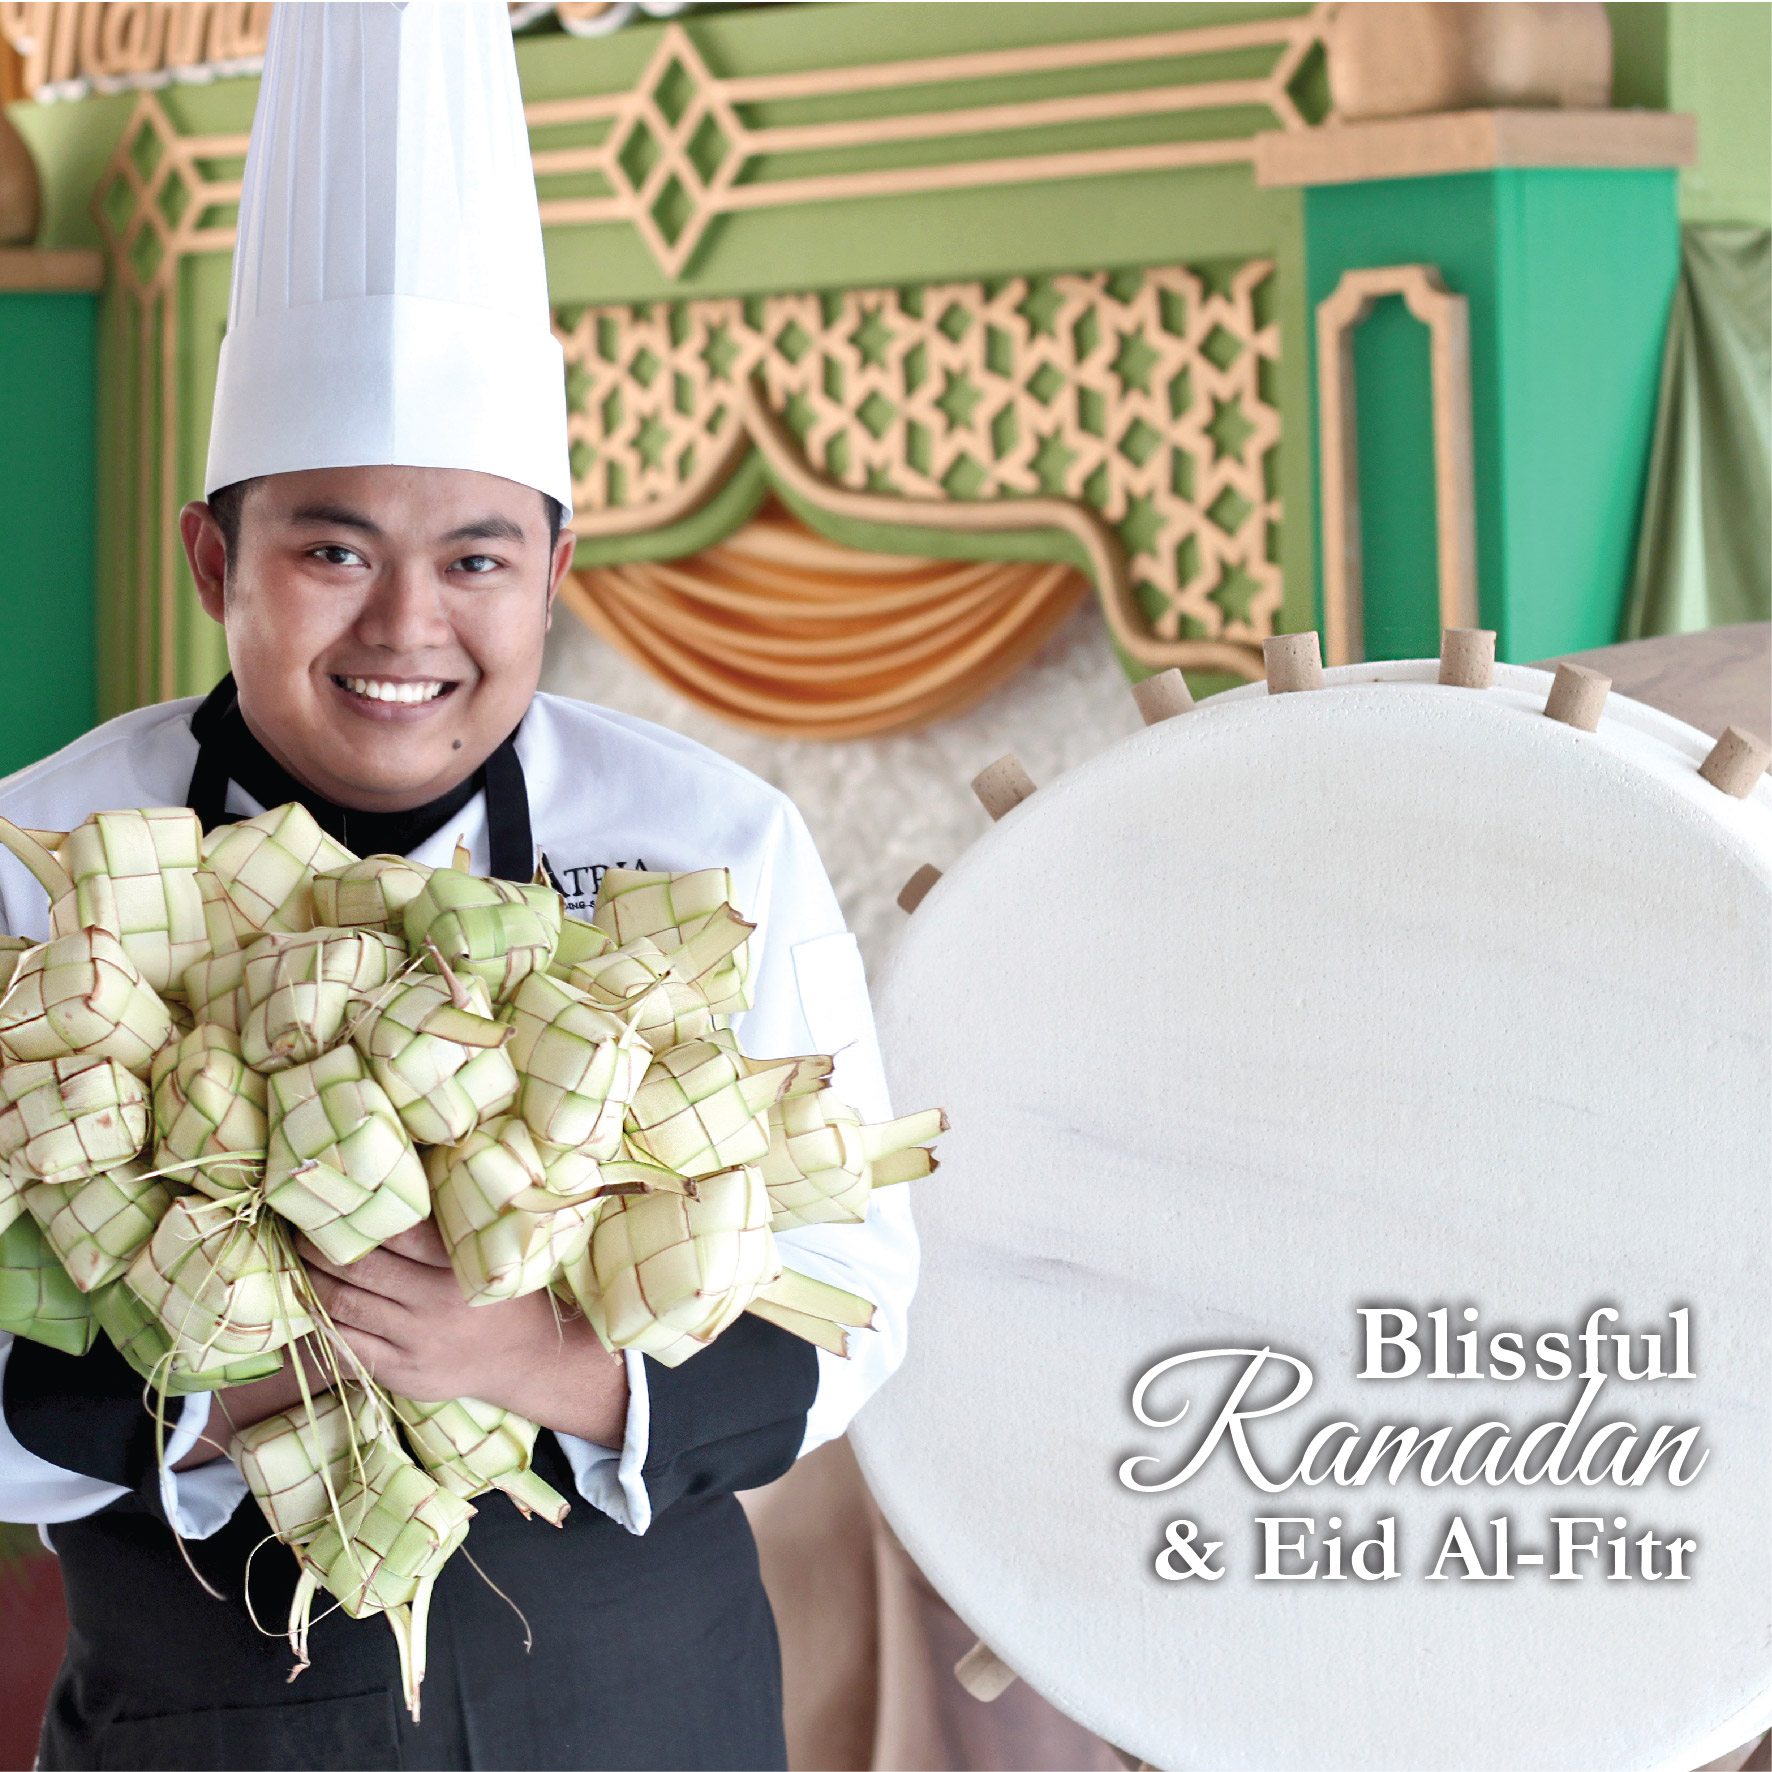 Blissful Eid Al-Fitr Atria Hotels